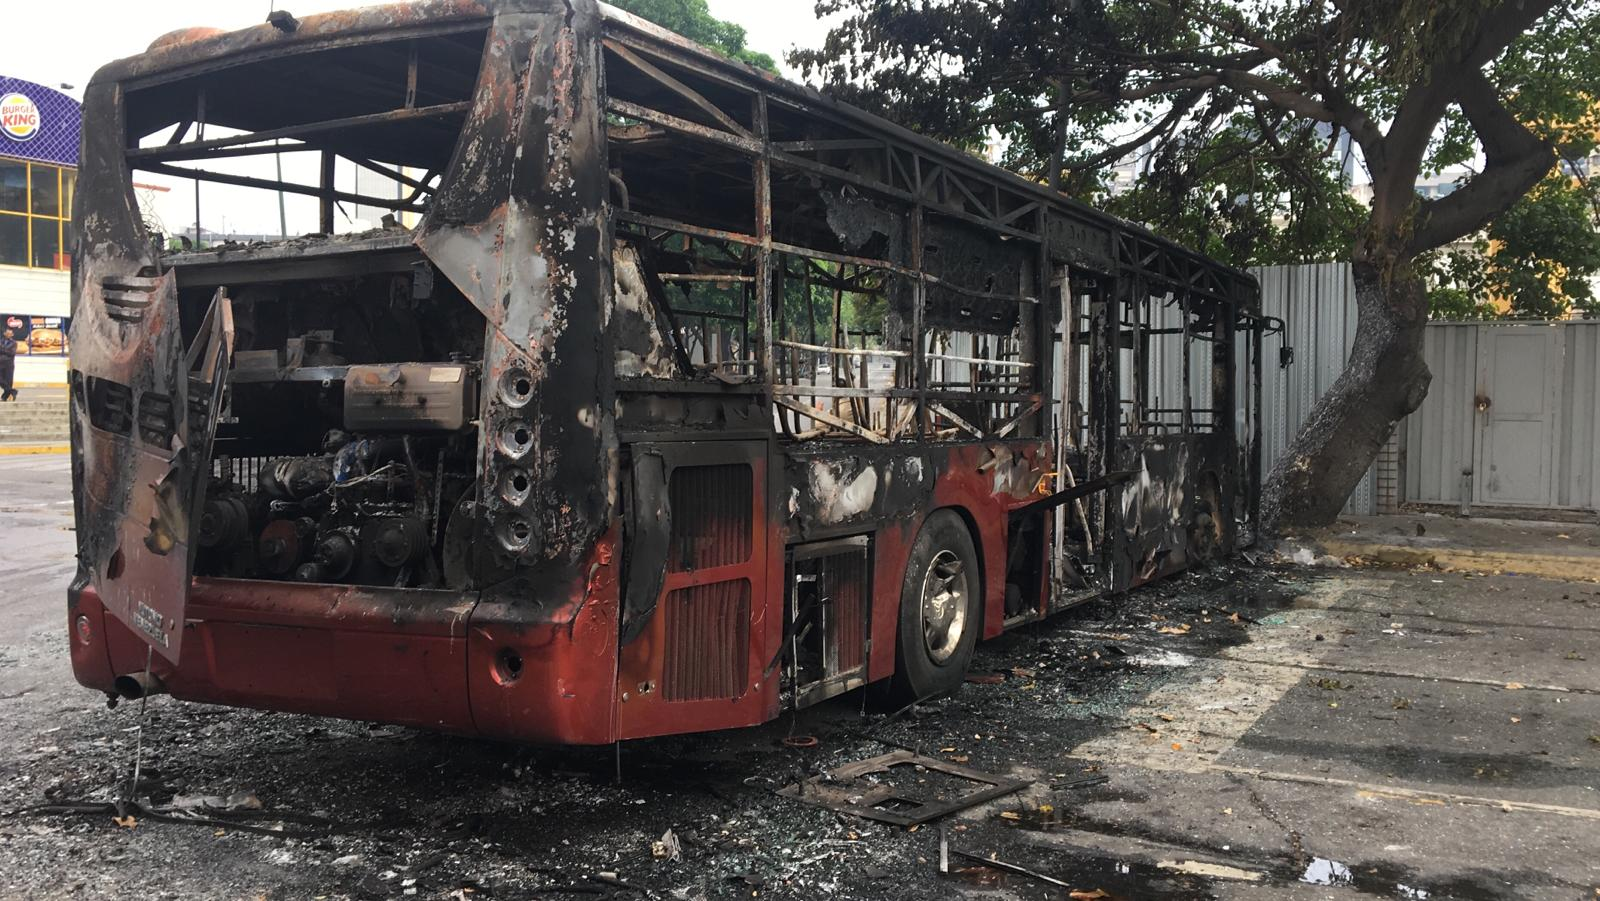 A burnt-out bus, also in the capital Wednesday morning.